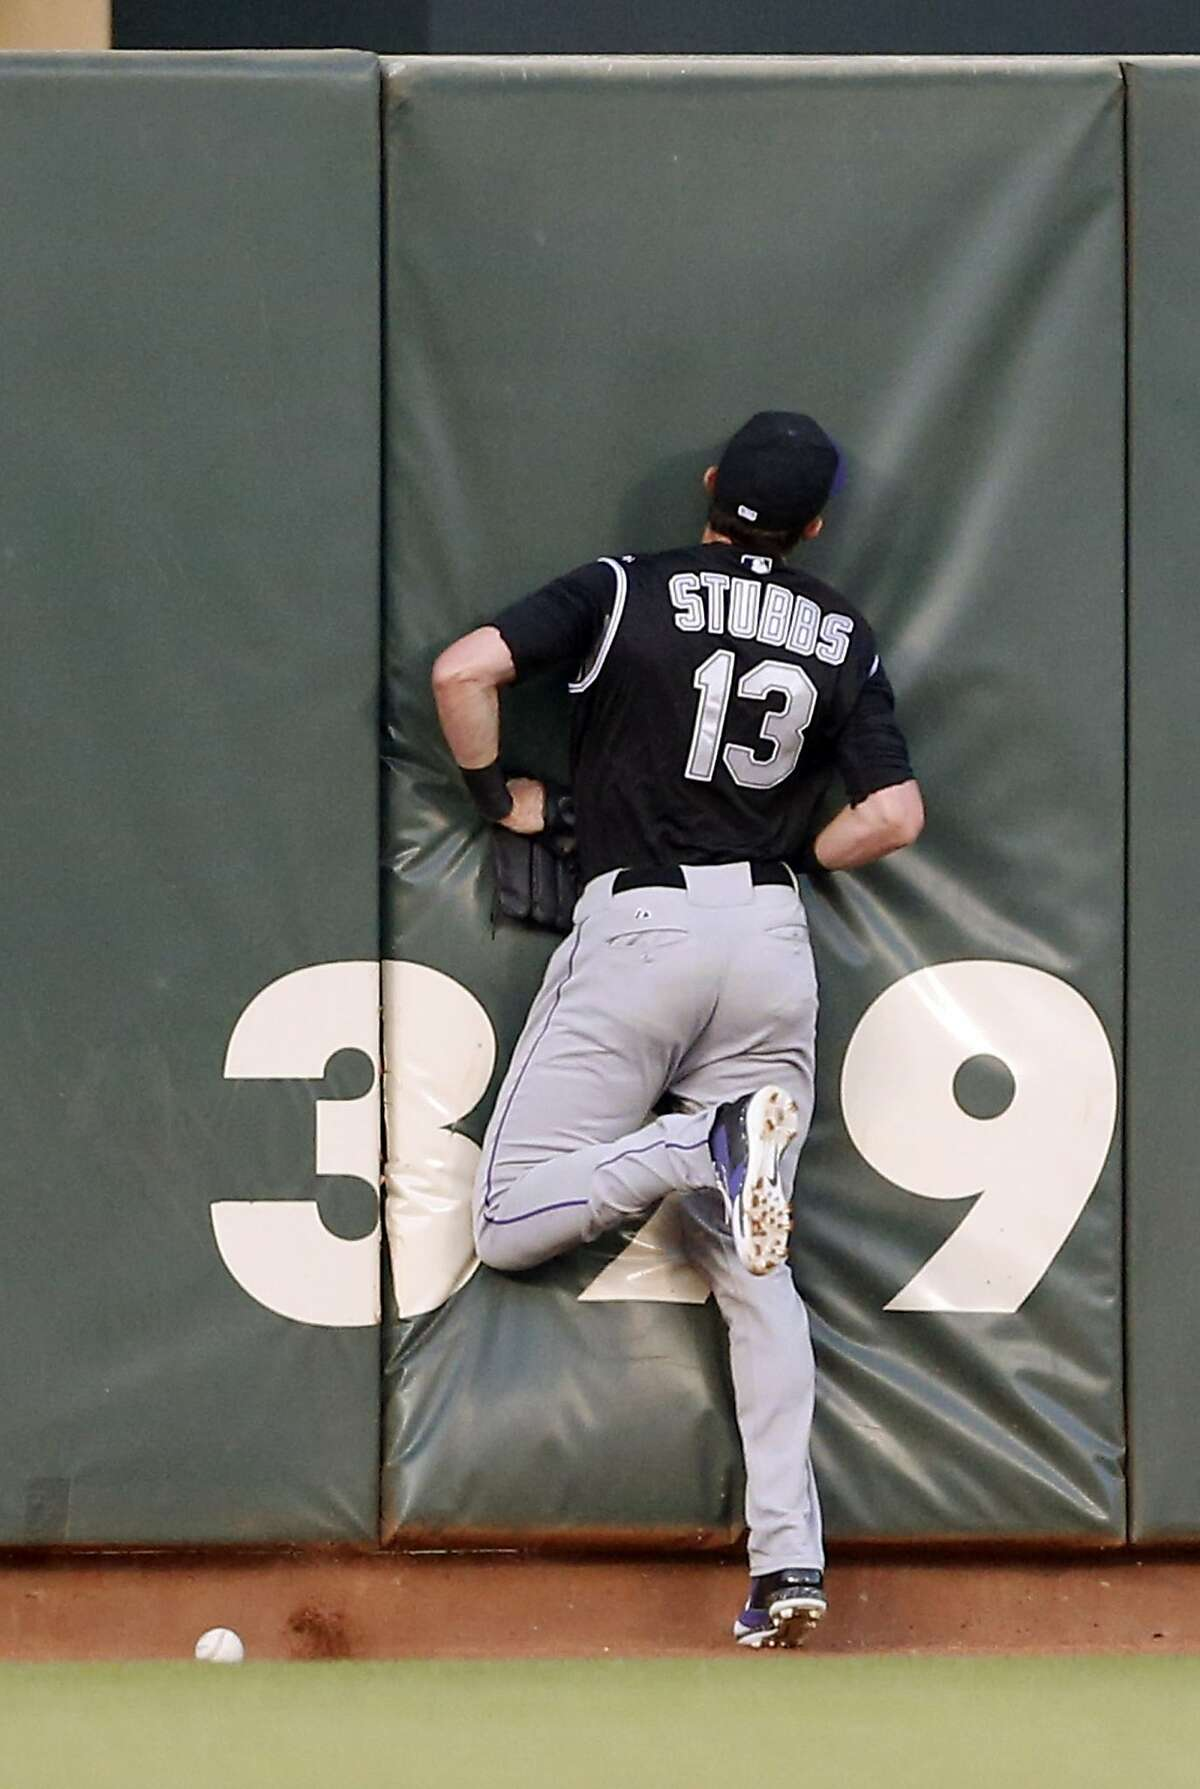 Colorado Rockies center fielder Drew Stubbs collides with the wall and is unable to catch a ball hit by San Francisco Giants' Angel Pagan during the third inning of a baseball game in San Francisco, Friday, June 13, 2014. (AP Photo/Beck Diefenbach)